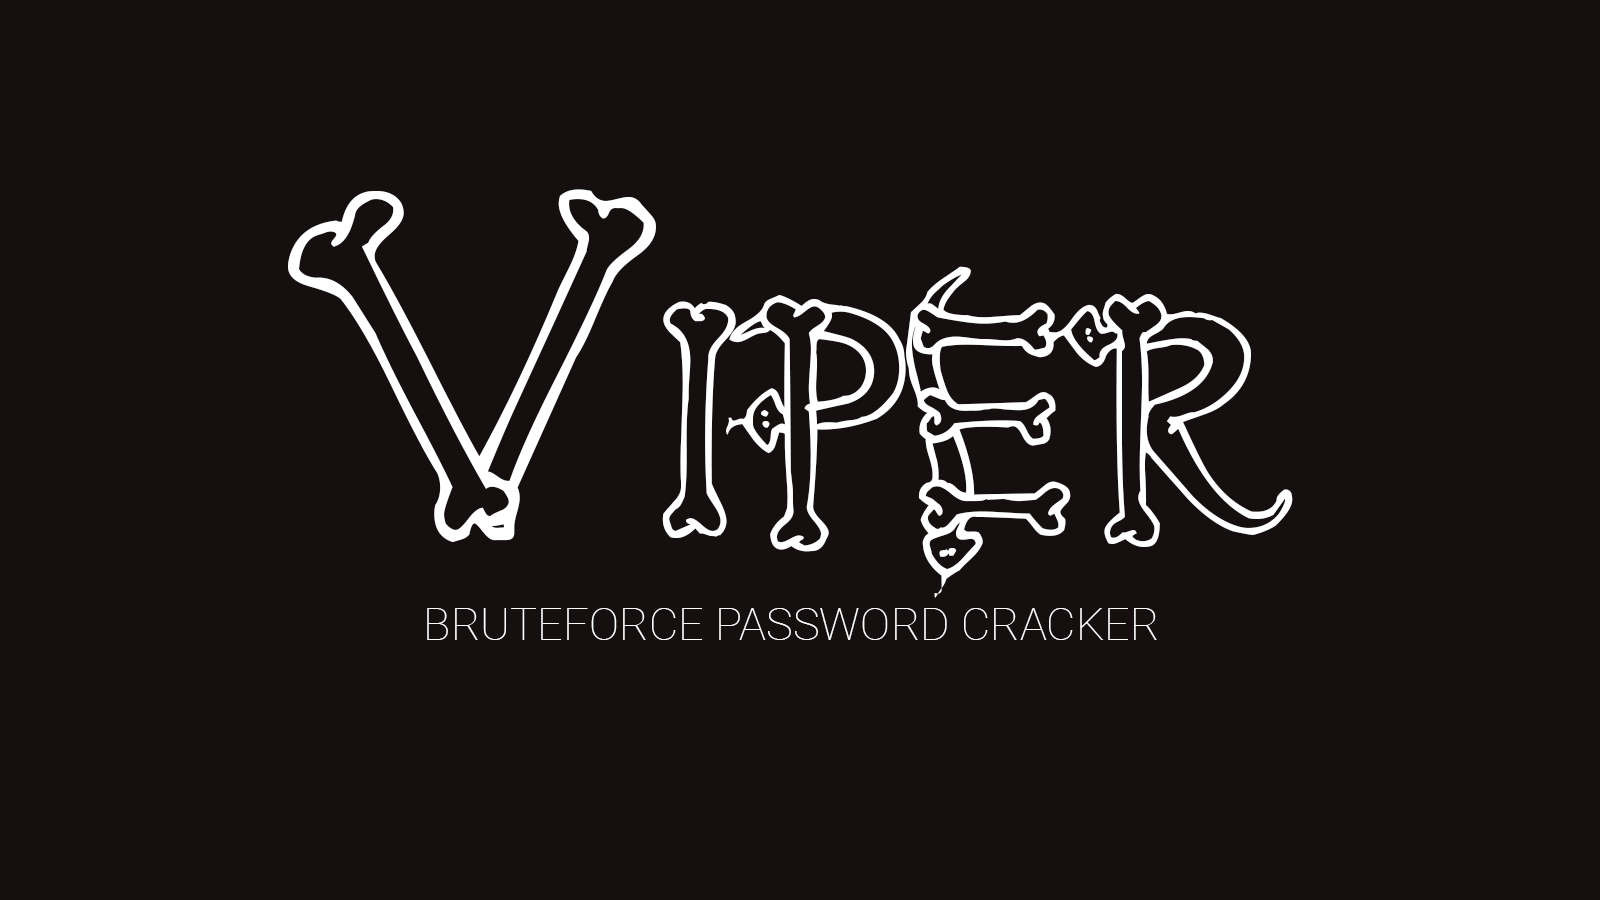 Viper - Bruteforce Password Cracker